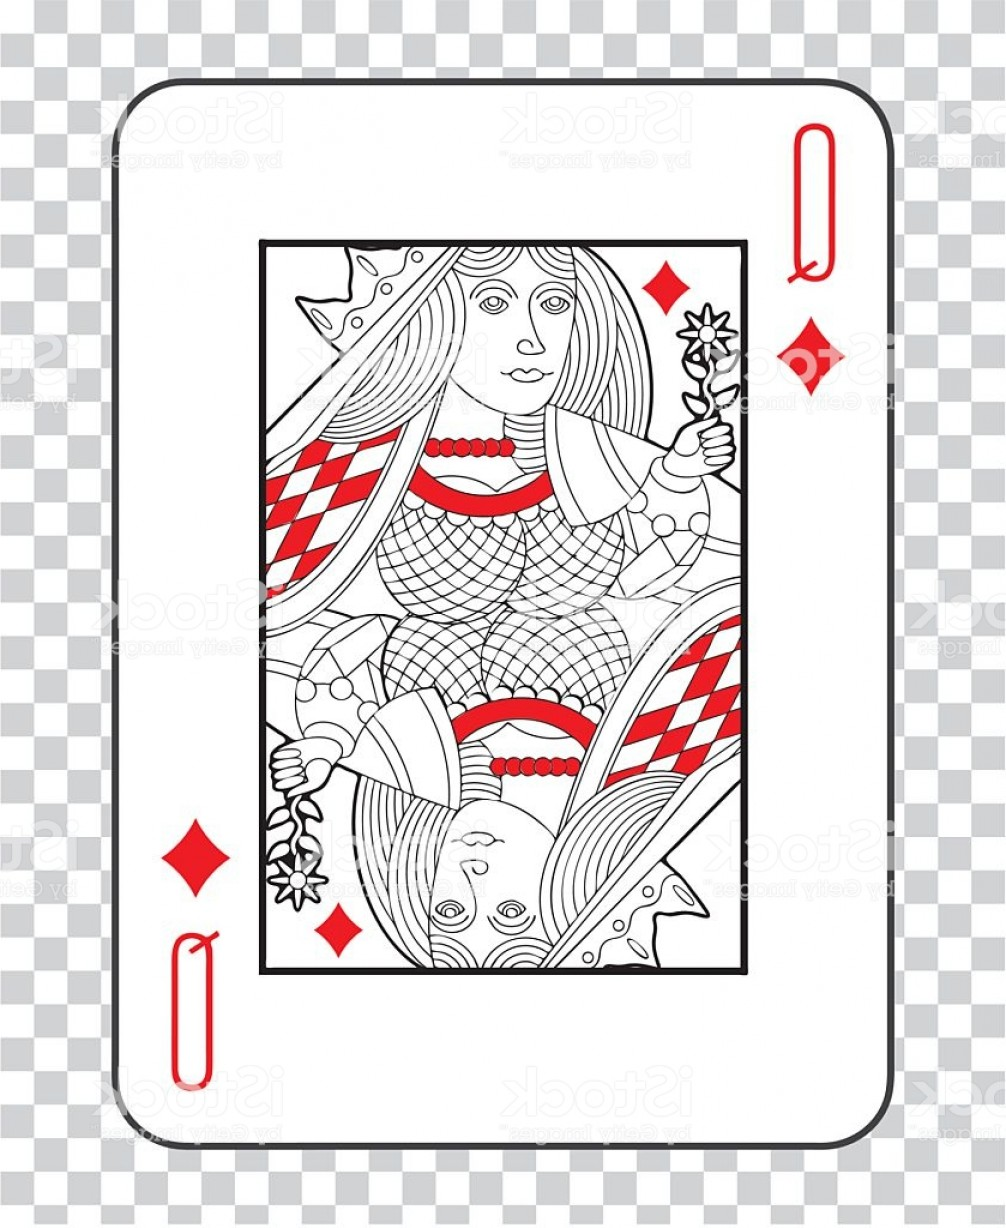 Single Playing Card Vector: Single Playing Cards Vector Queen Diamonds Gm